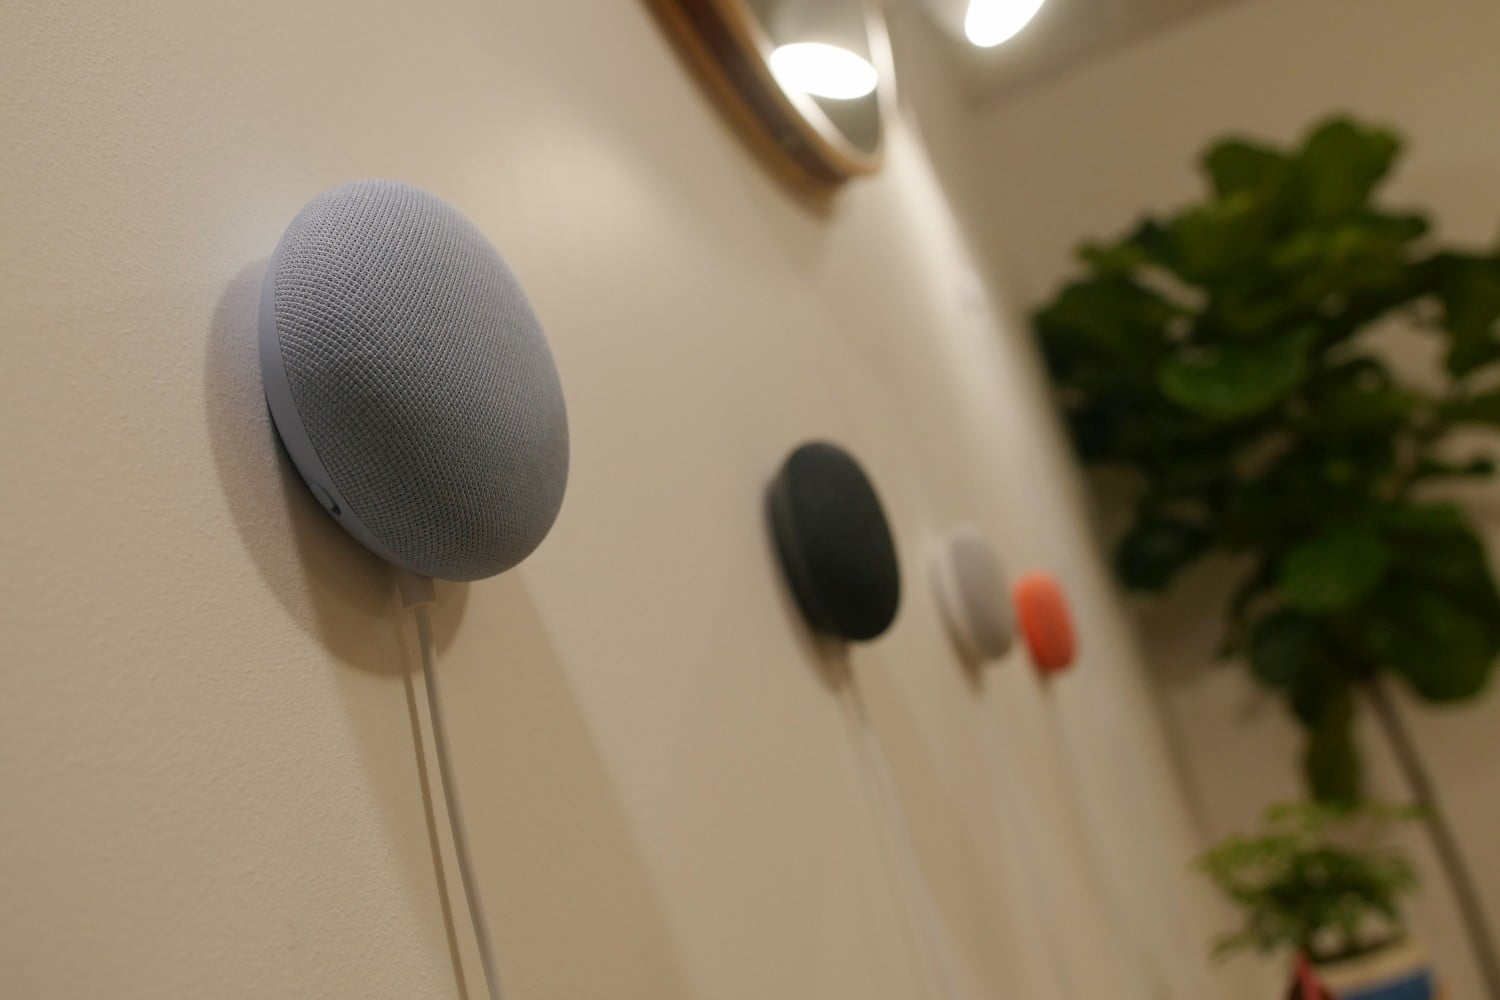 Google Nest Mini hands-on review: New name, few changes